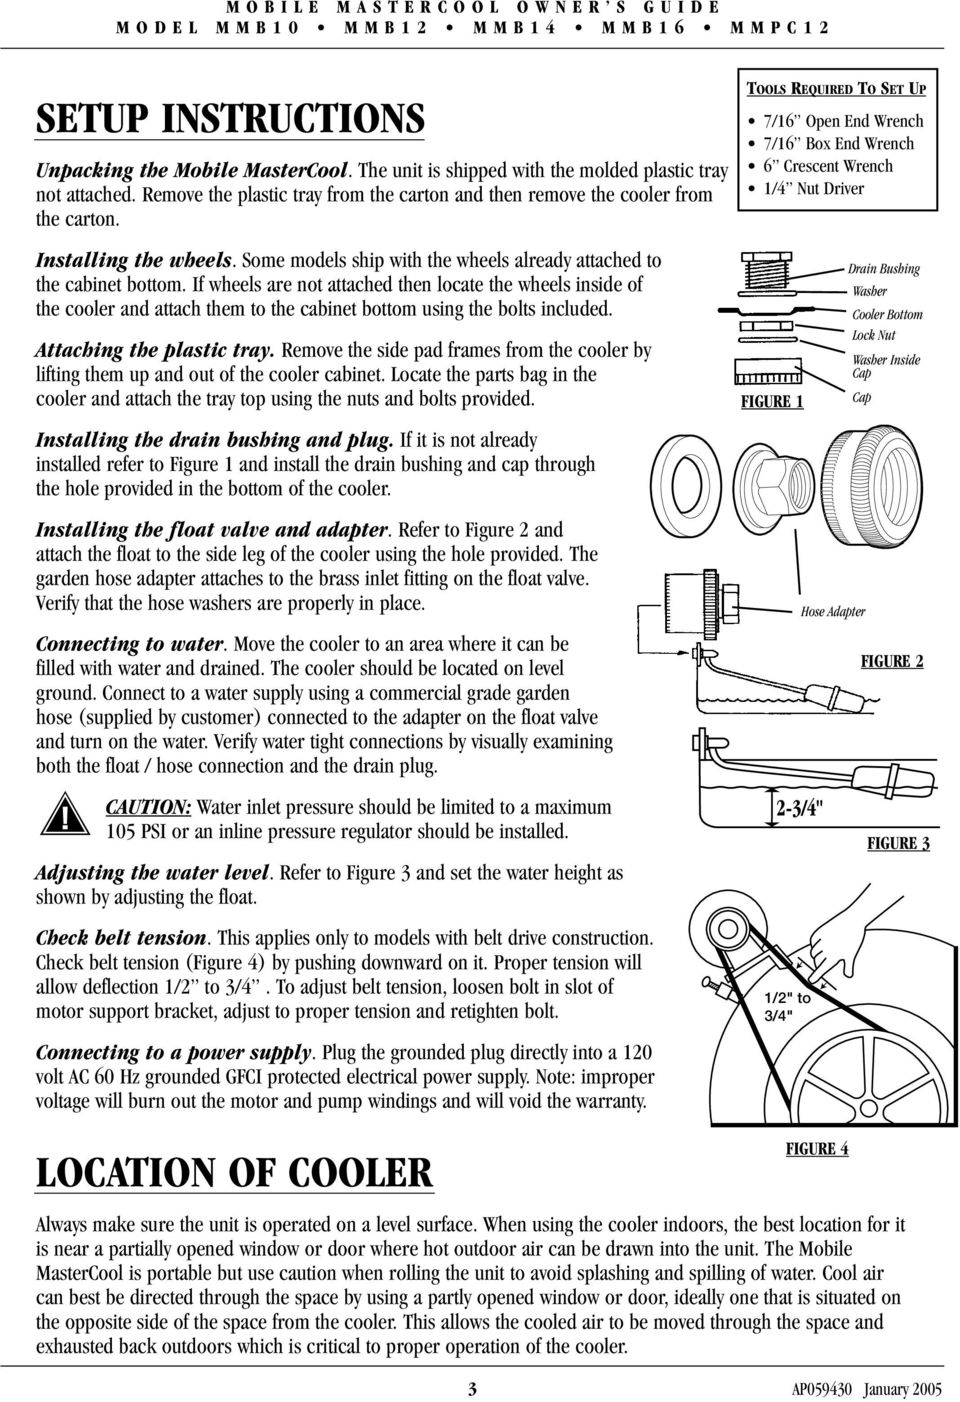 Read This First! OWNER S GUIDE - PDF